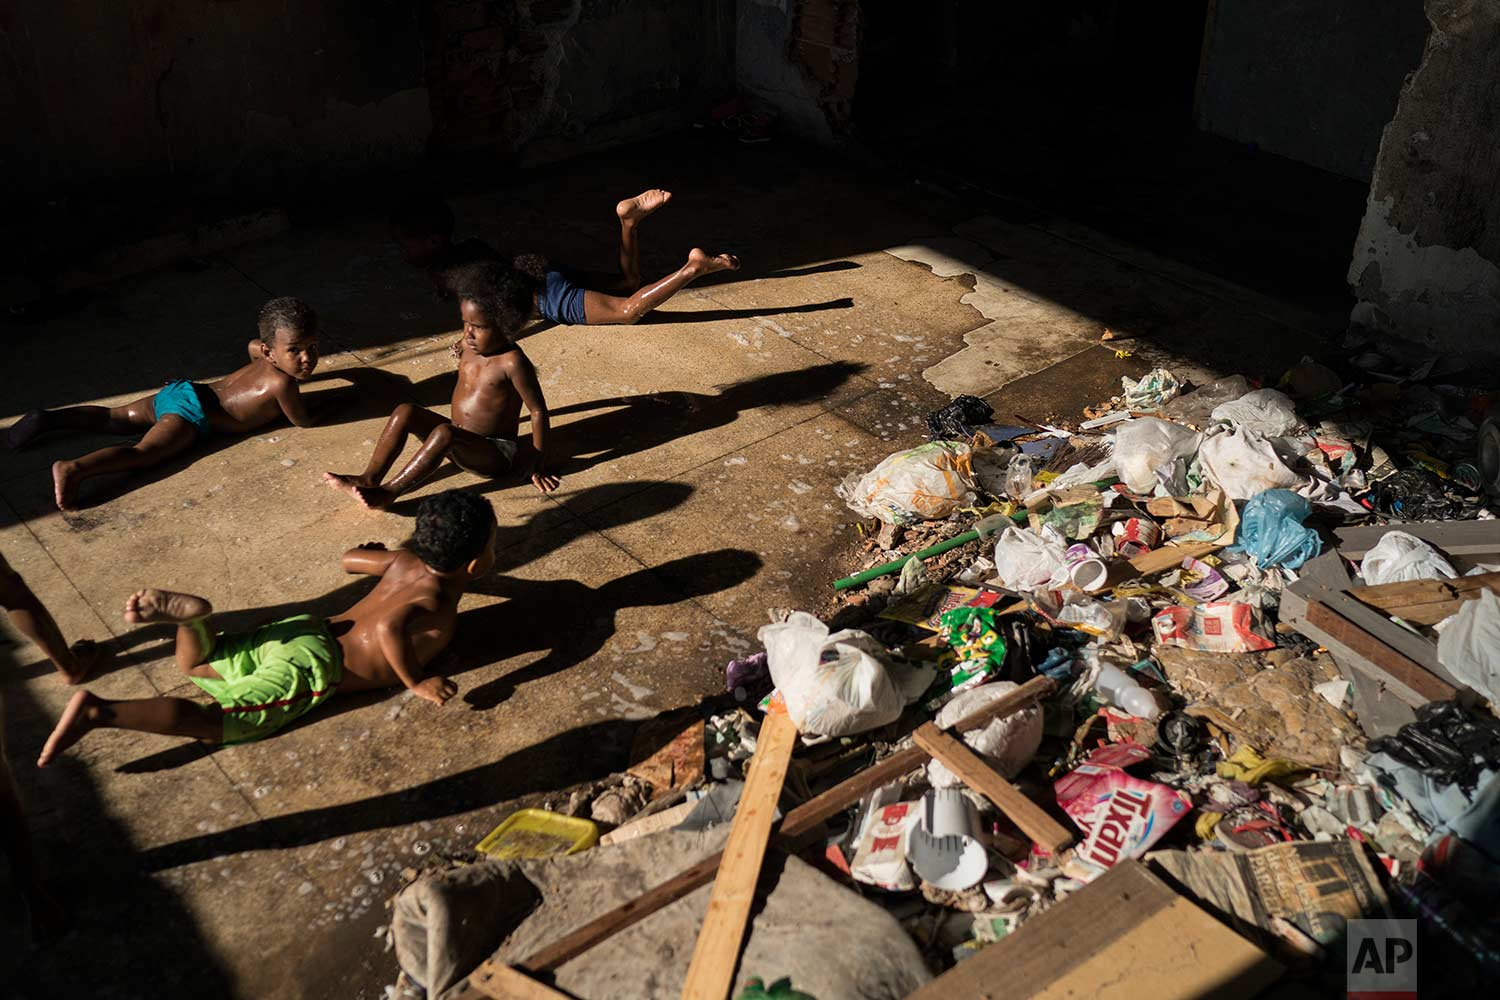 In this Sept. 10, 2017 photo, children slide on a puddle near trash as they play in a squatter building that used to house the Brazilian Institute of Geography and Statistics (IBGE) in the Mangueira slum of Rio de Janeiro, Brazil. (AP Photo/Felipe Dana)